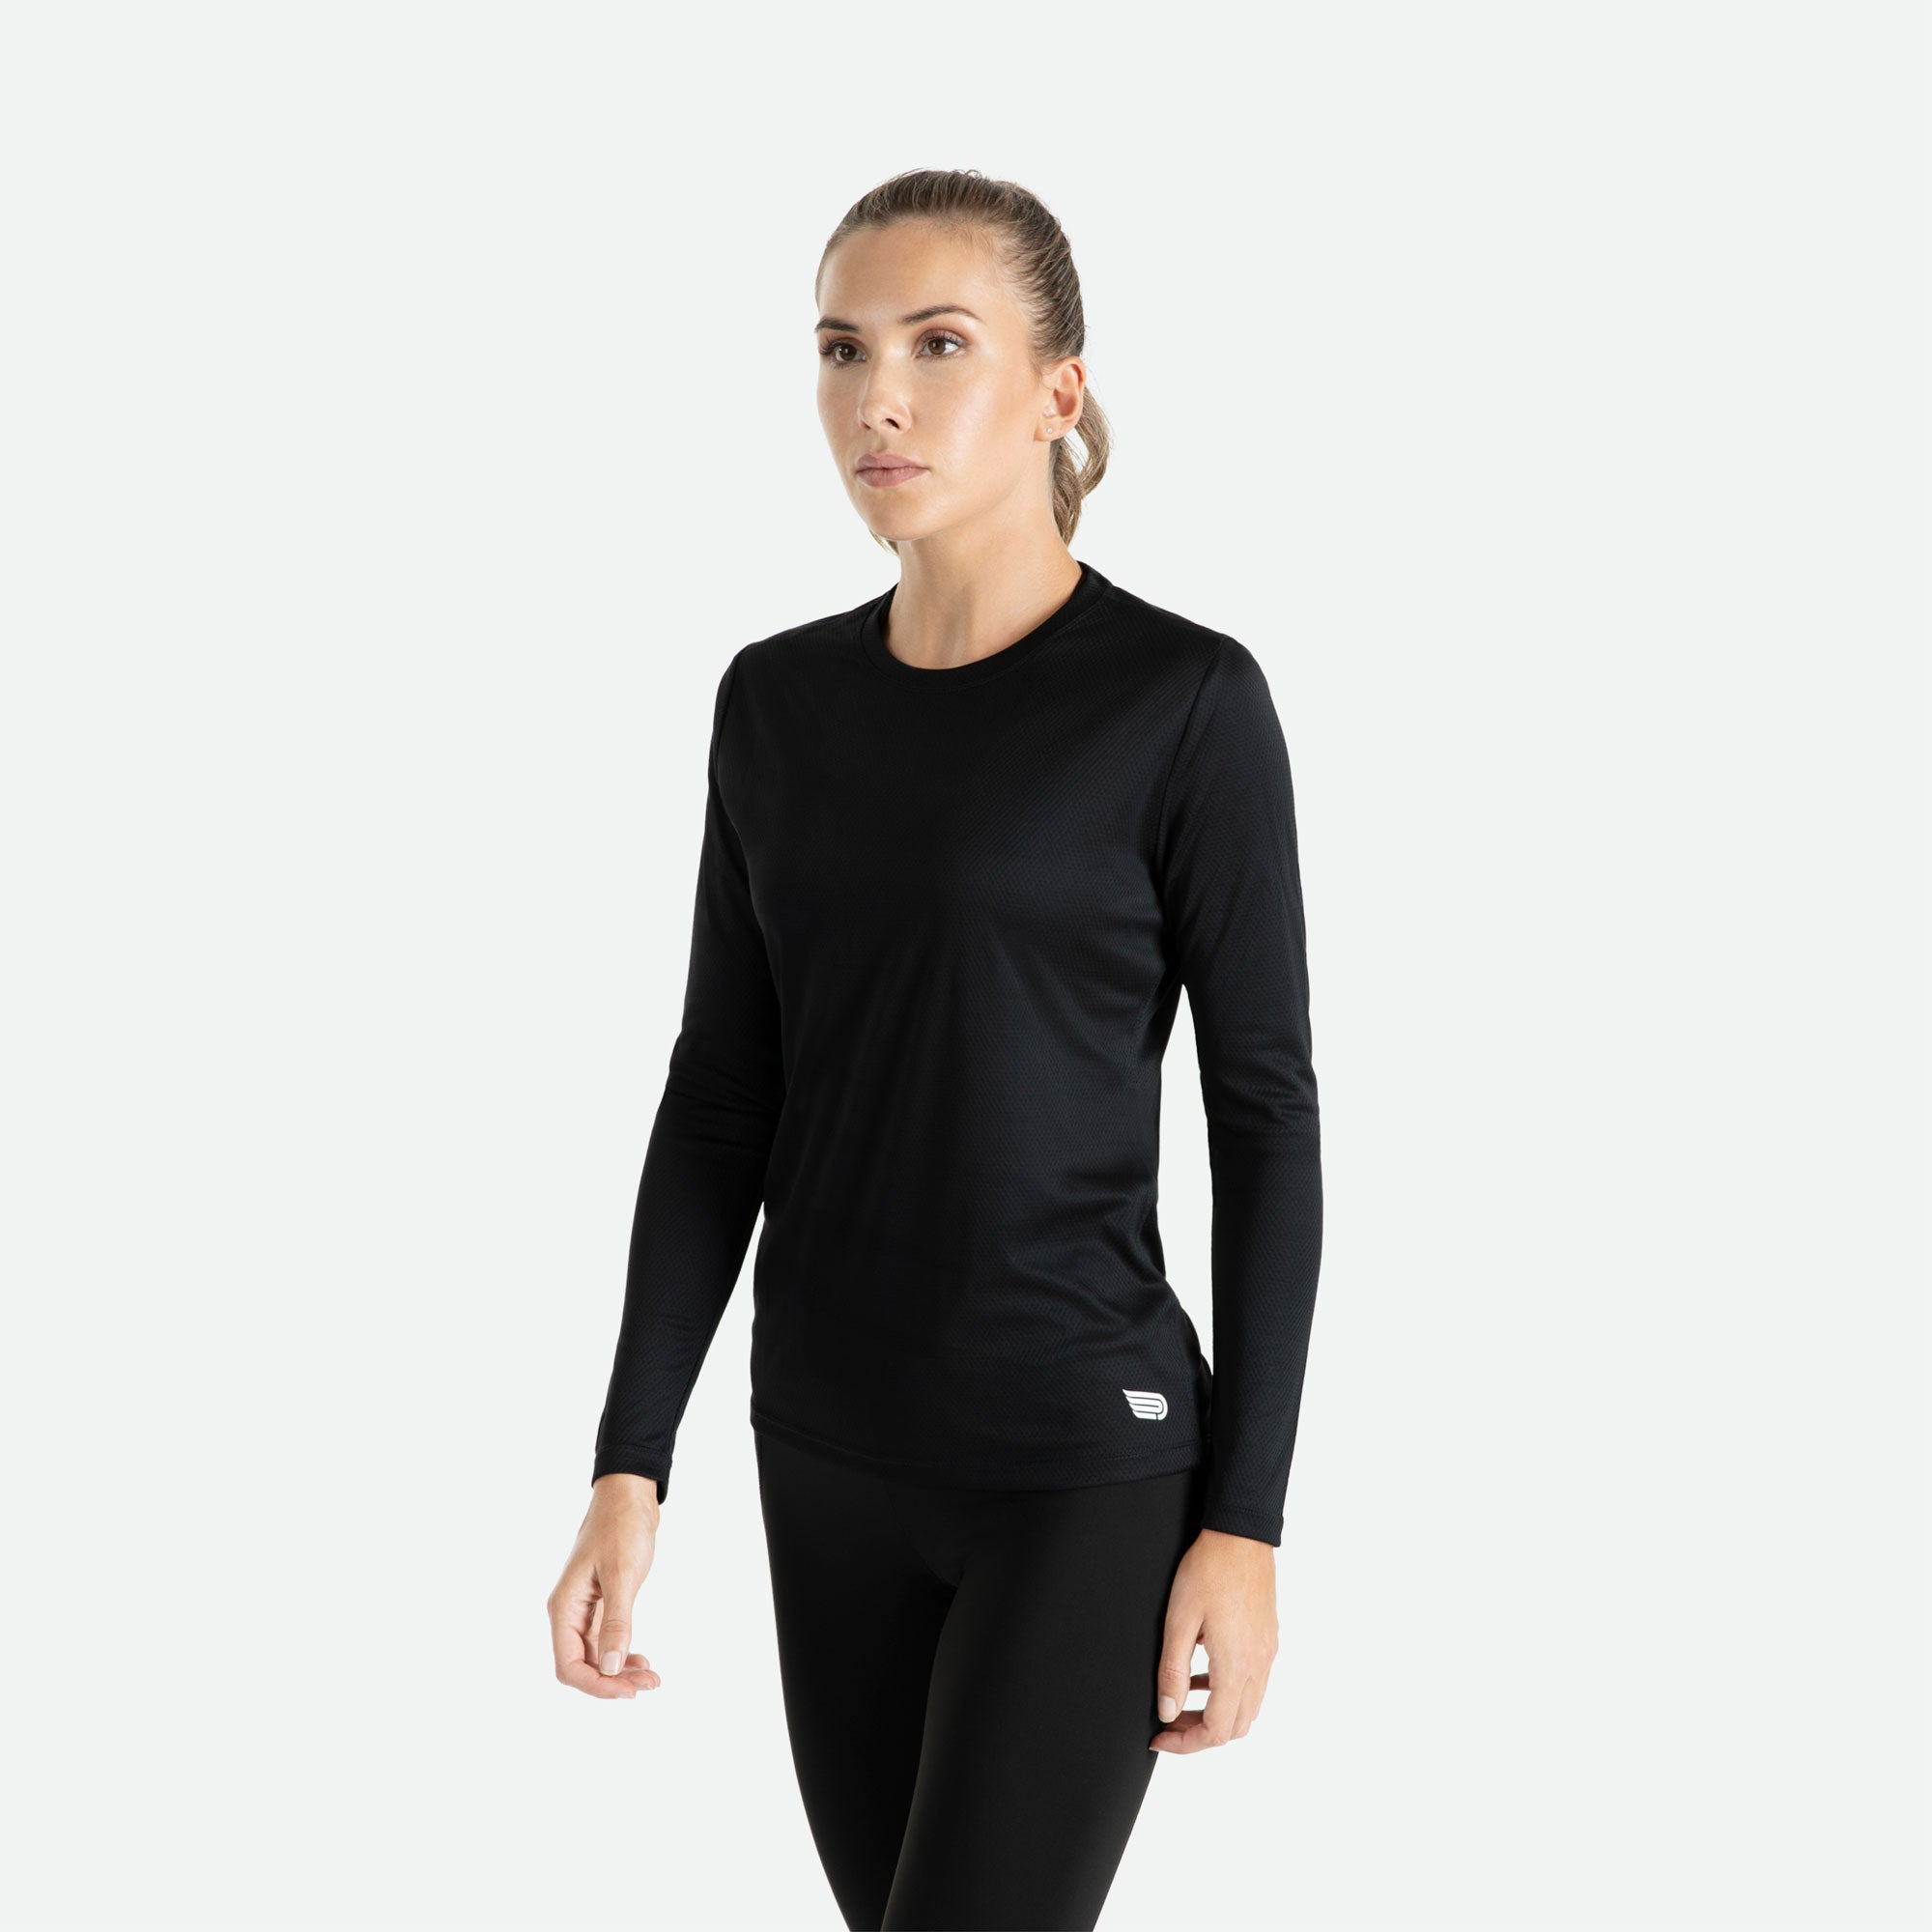 Our Pressio women's black Hāpai long sleeve t-shirt features EcoTECH MF fabric which has dual filament recycled polyester yarns from Unifi for superior moisture control to keep you dry.